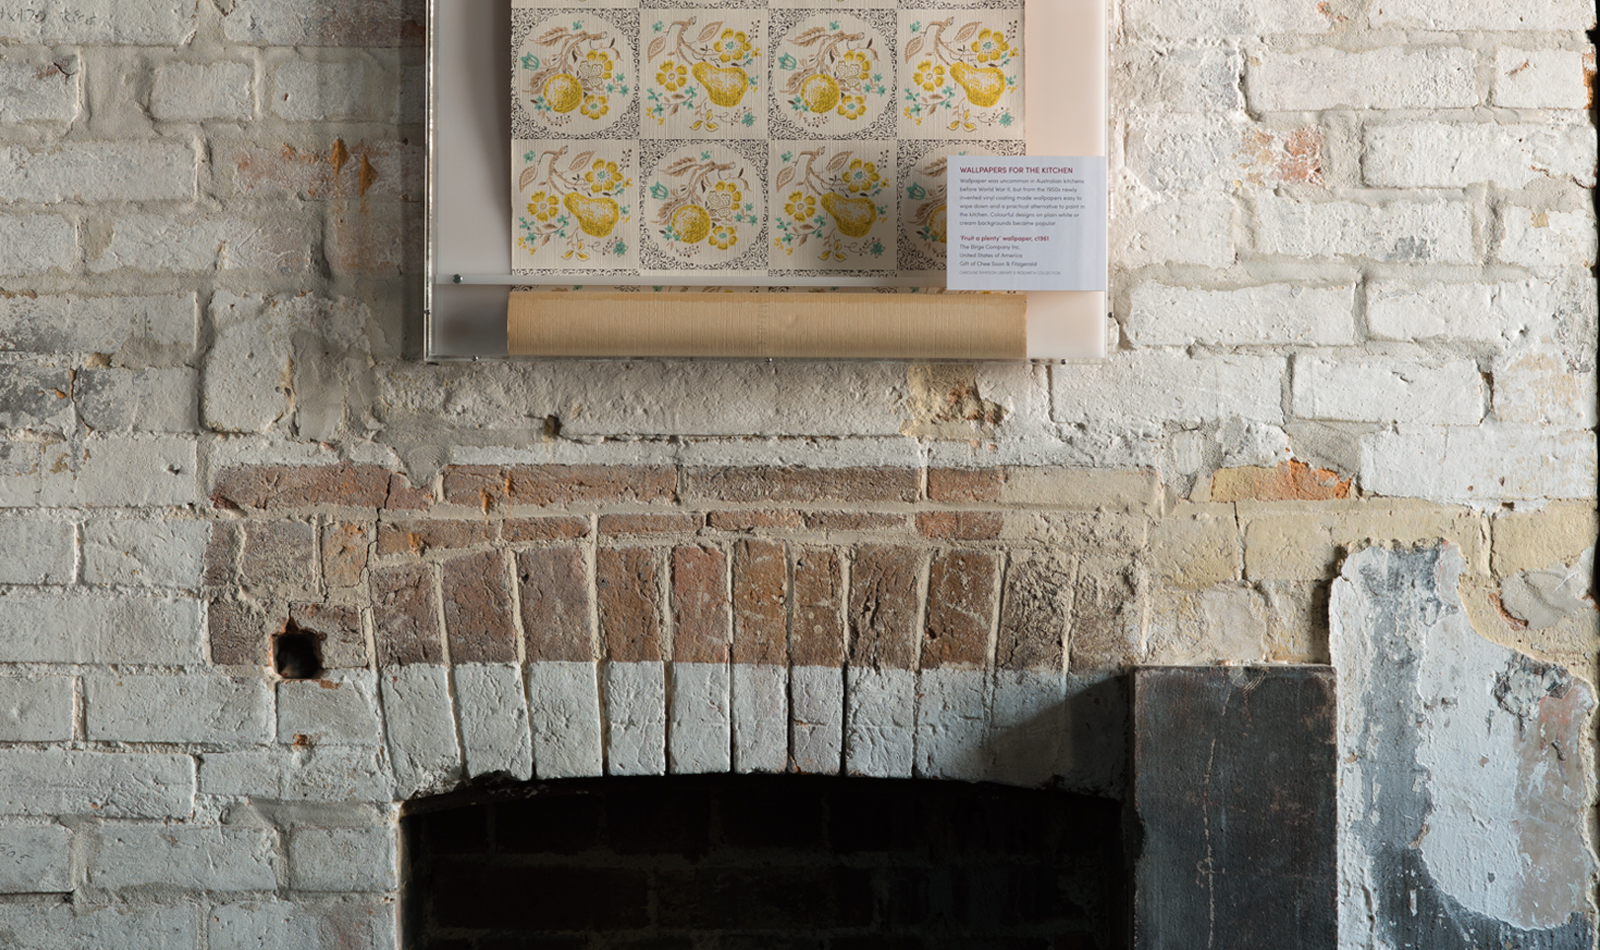 Brick fireplace with textured wallpaper image from The Caroline Simpson Library & Research Collection